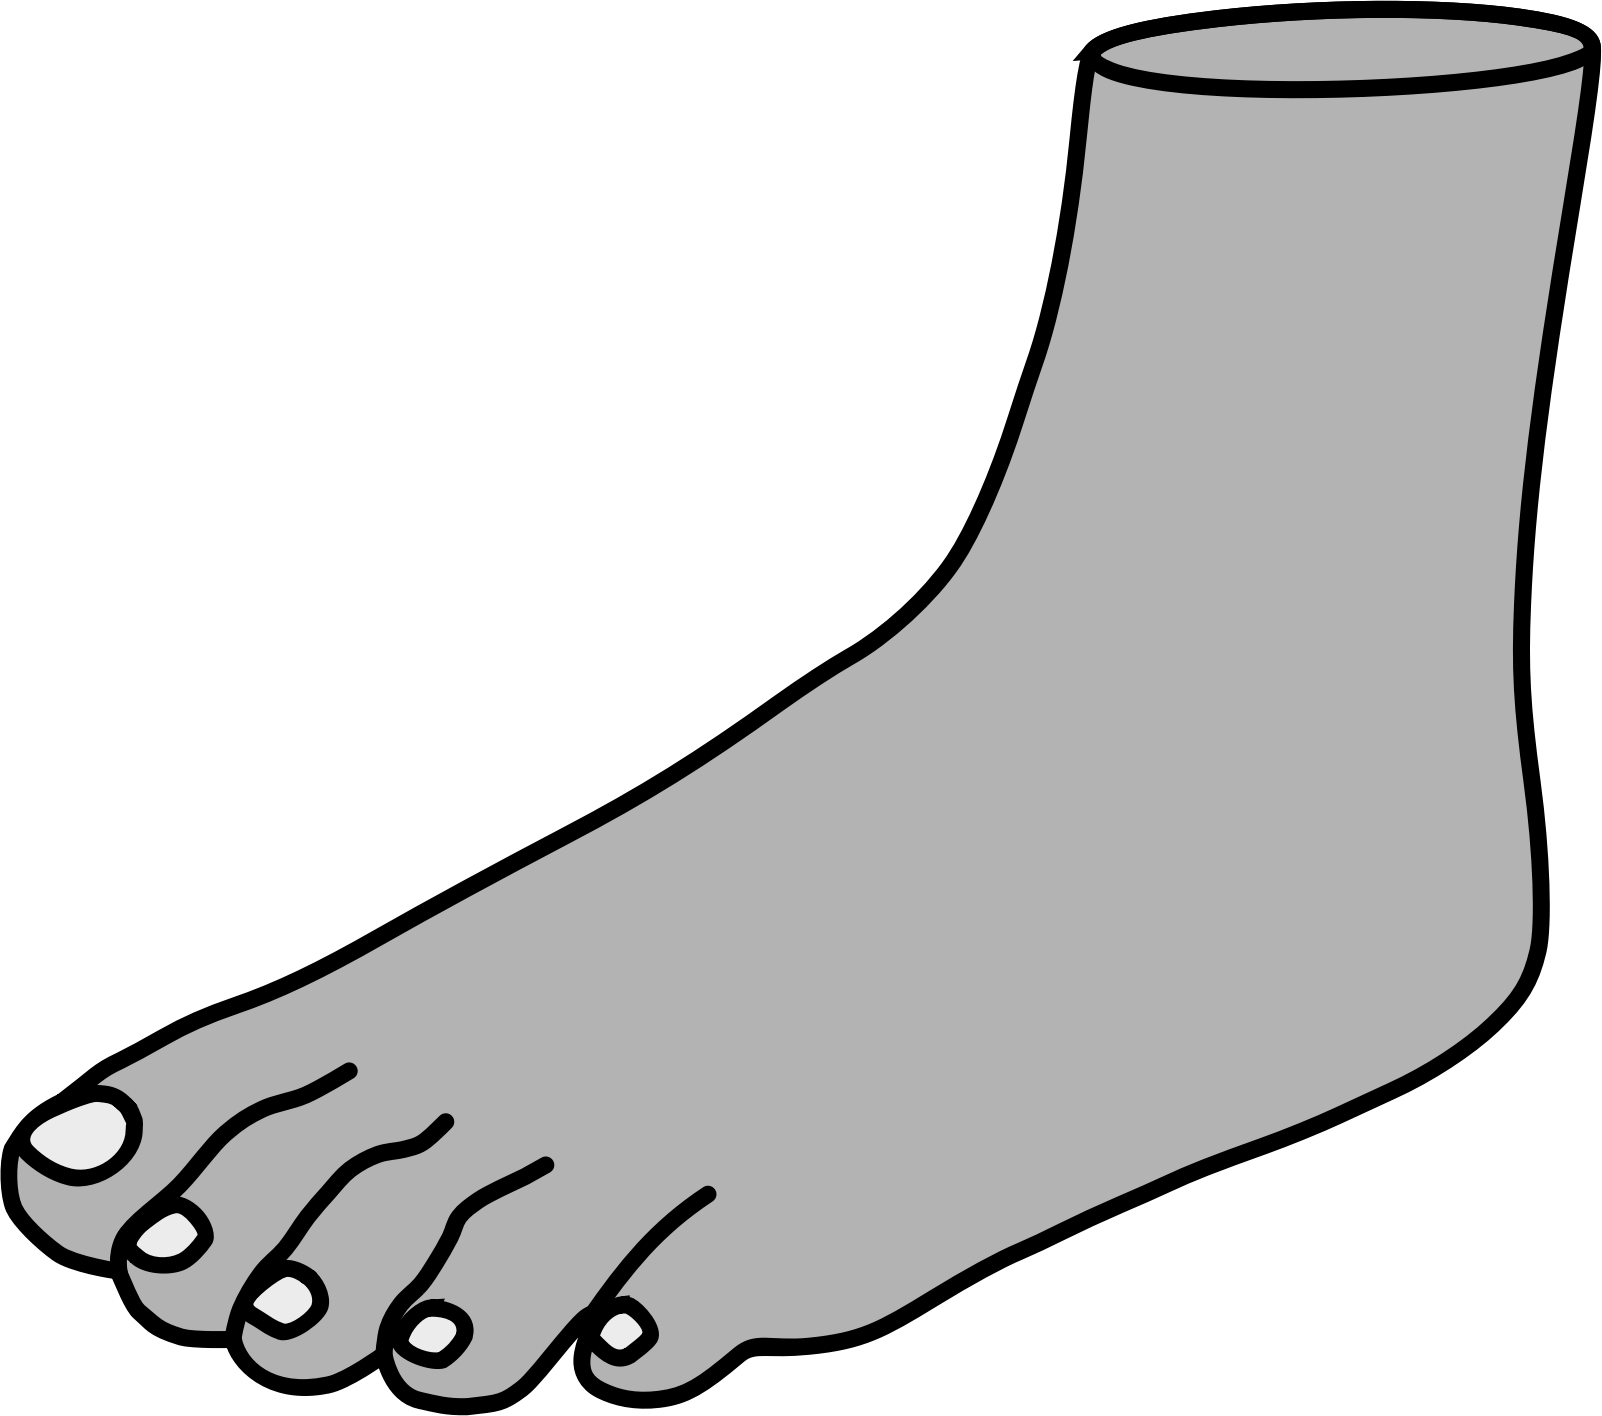 Barefoot clipart foot stomping #7